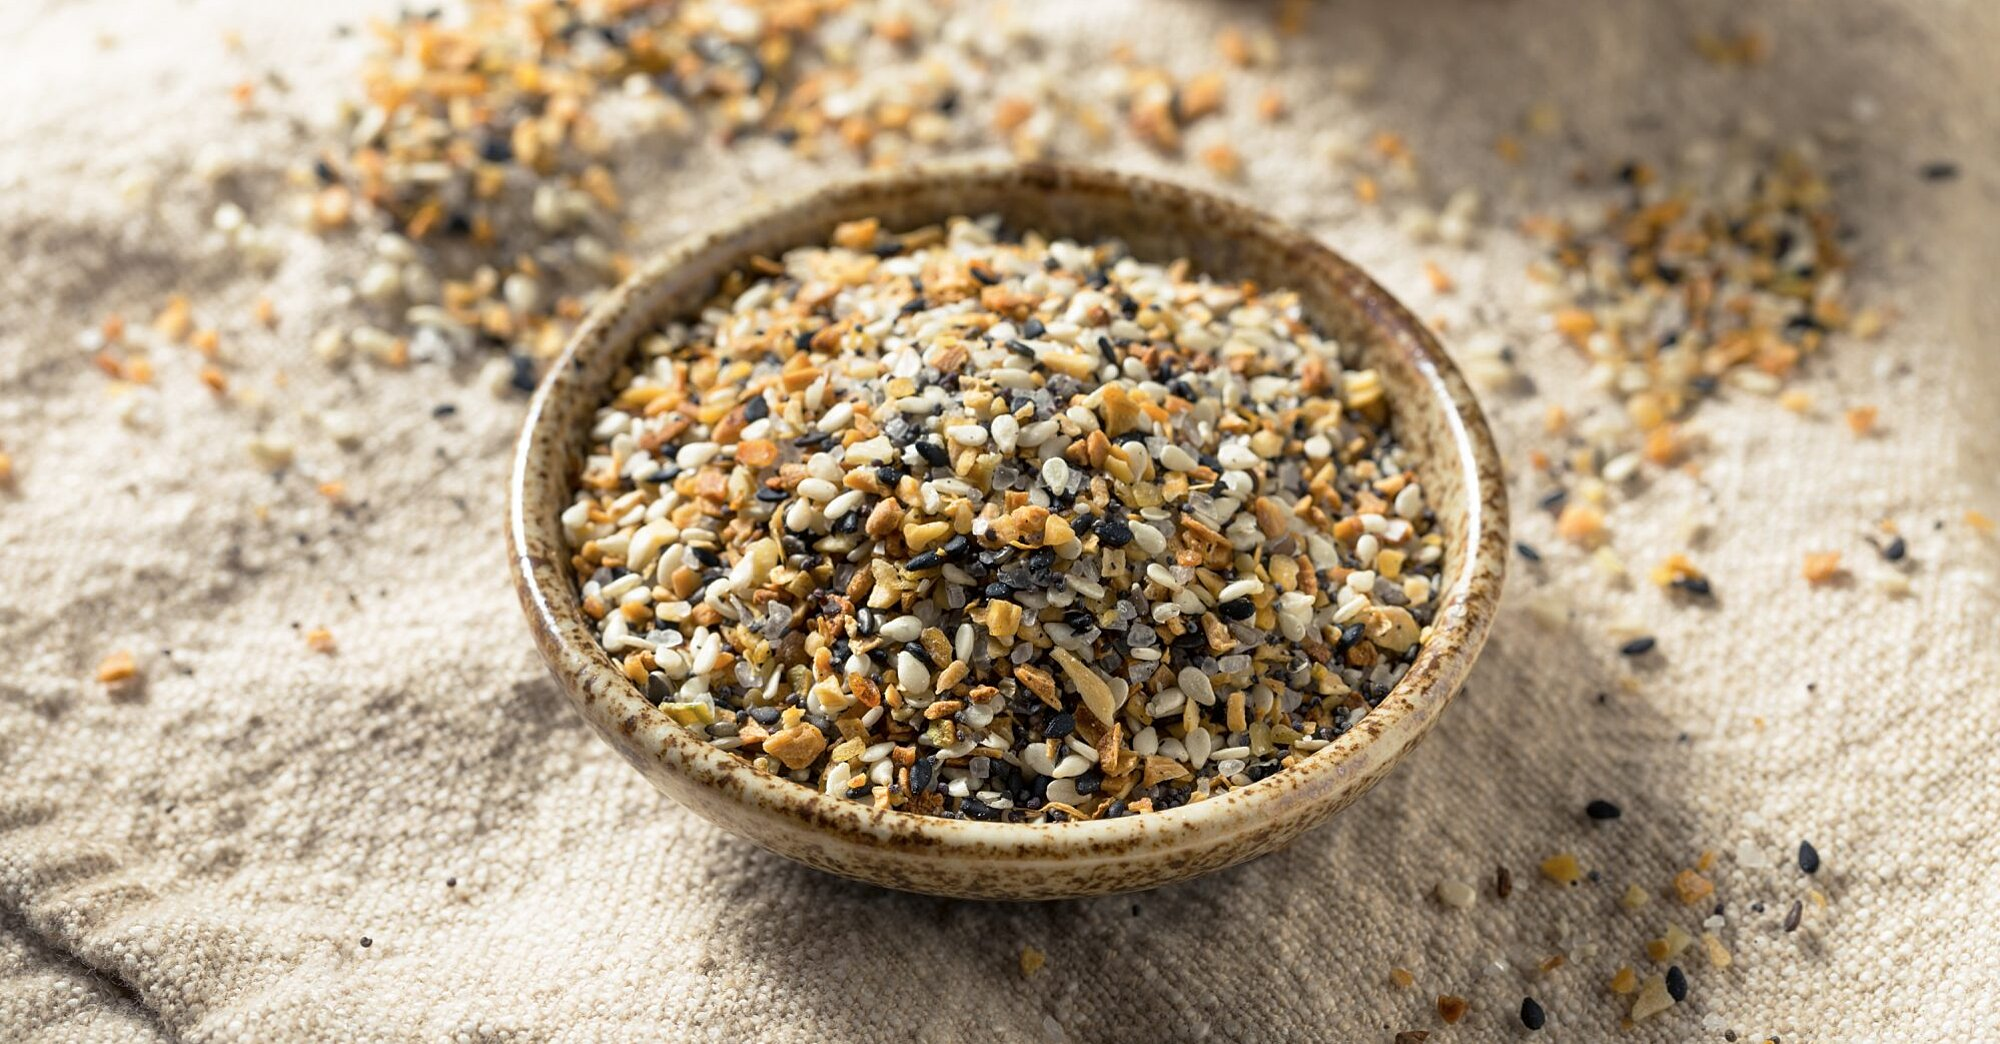 How to Make Everything Bagel Seasoning From Scratch